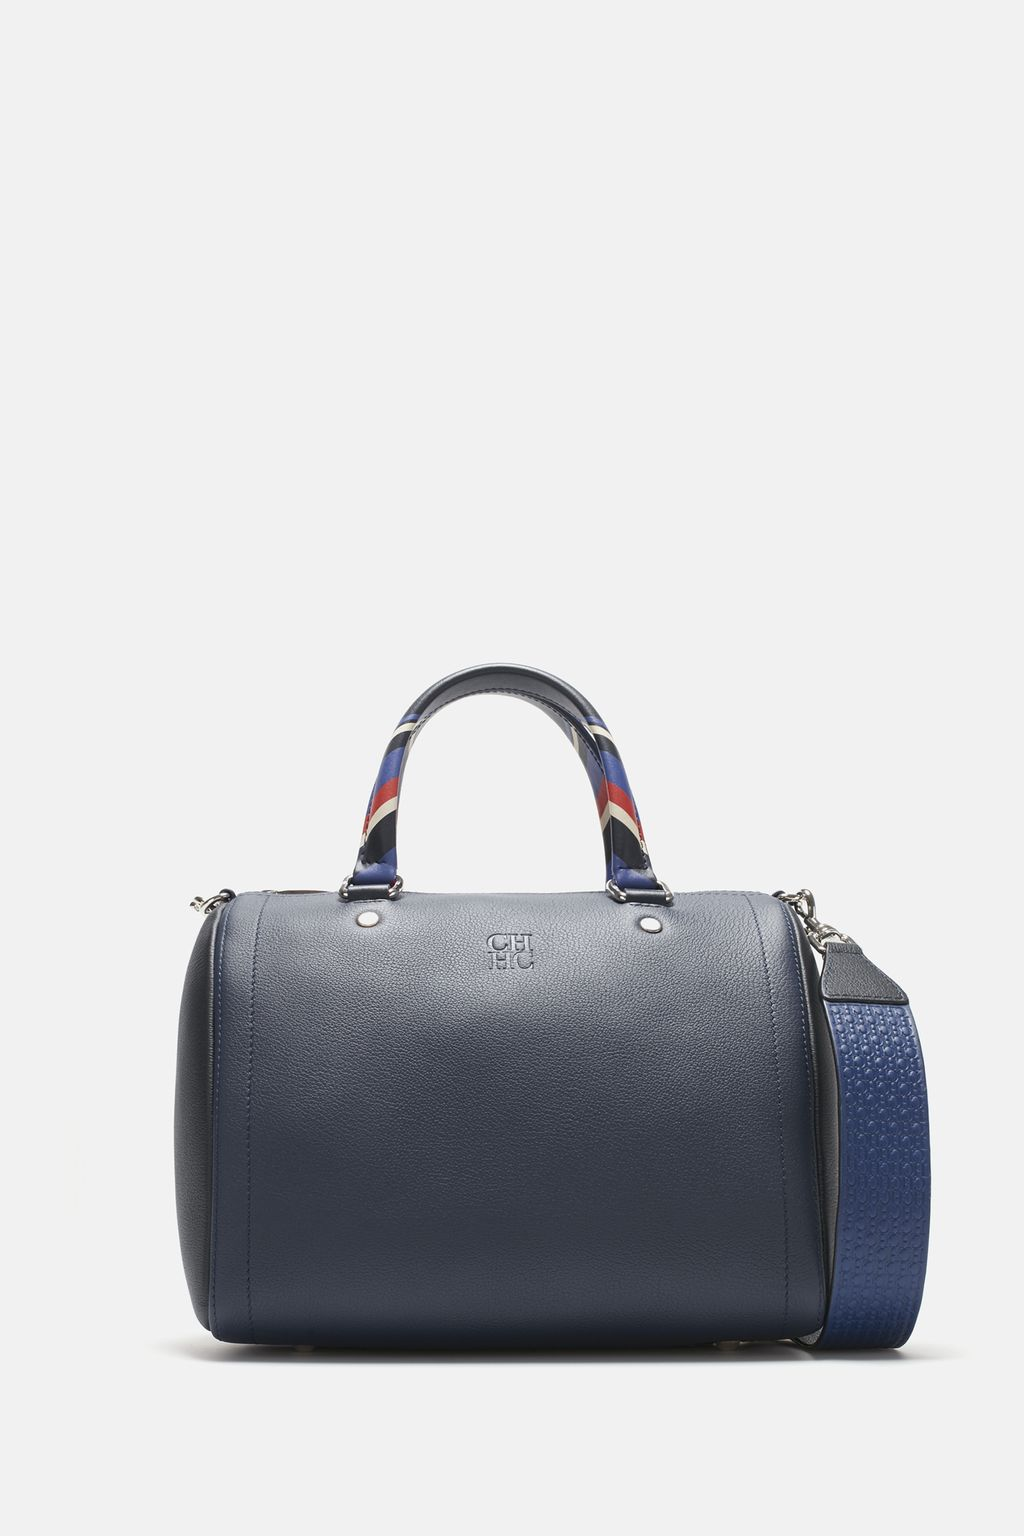 Andy 7 | Medium bowling bag